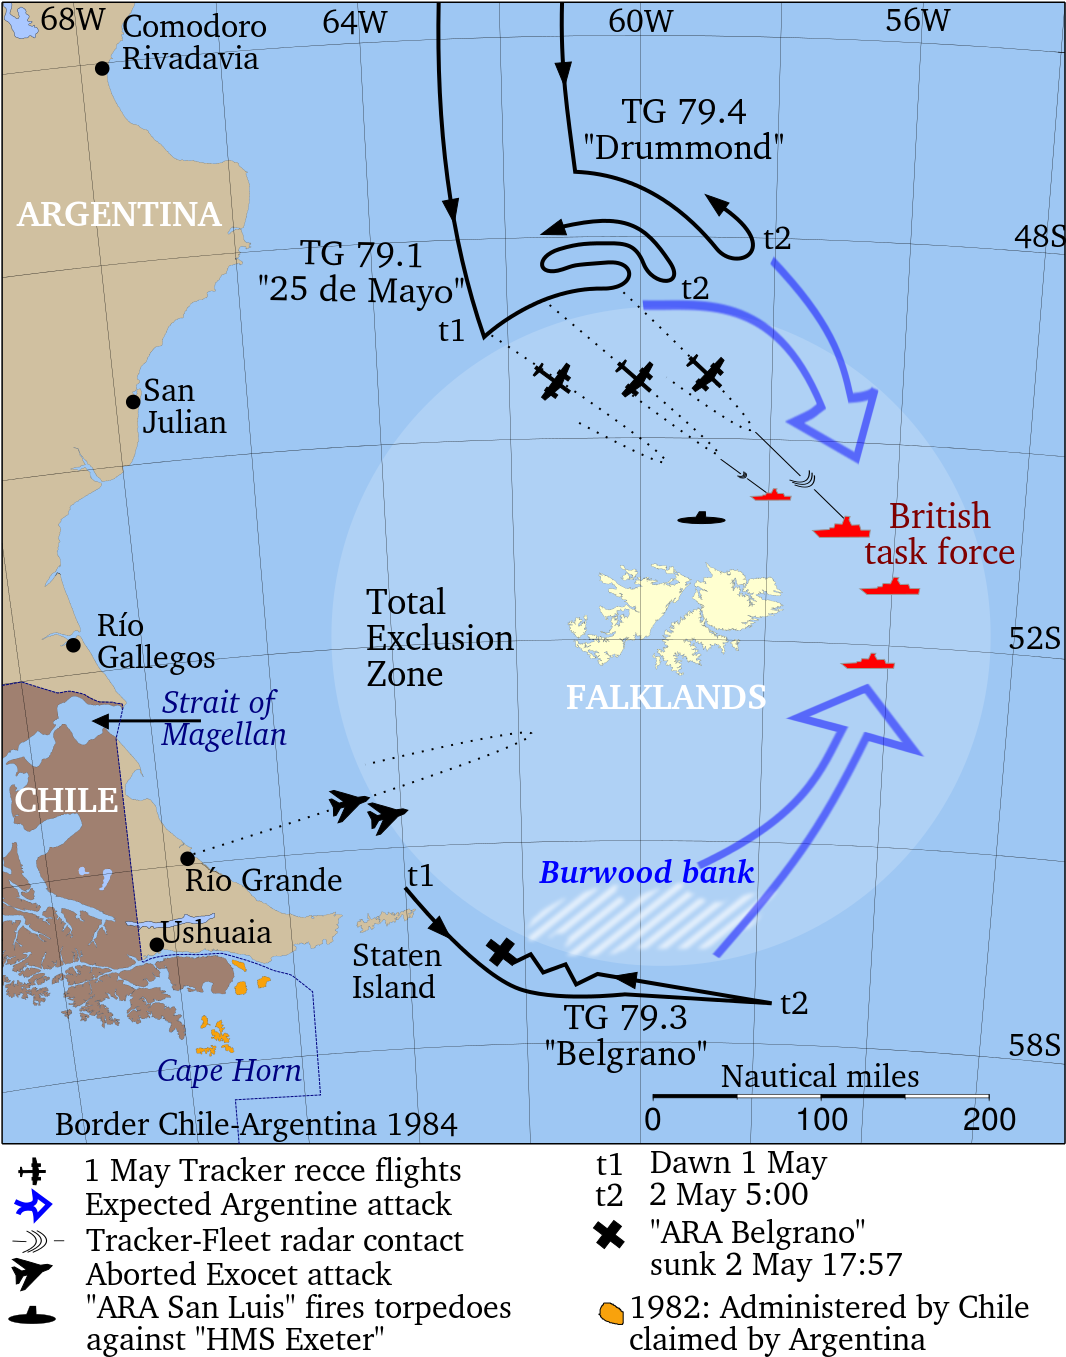 Map of the Total Exclusion Zone during the Falkland Islands War, 1982.